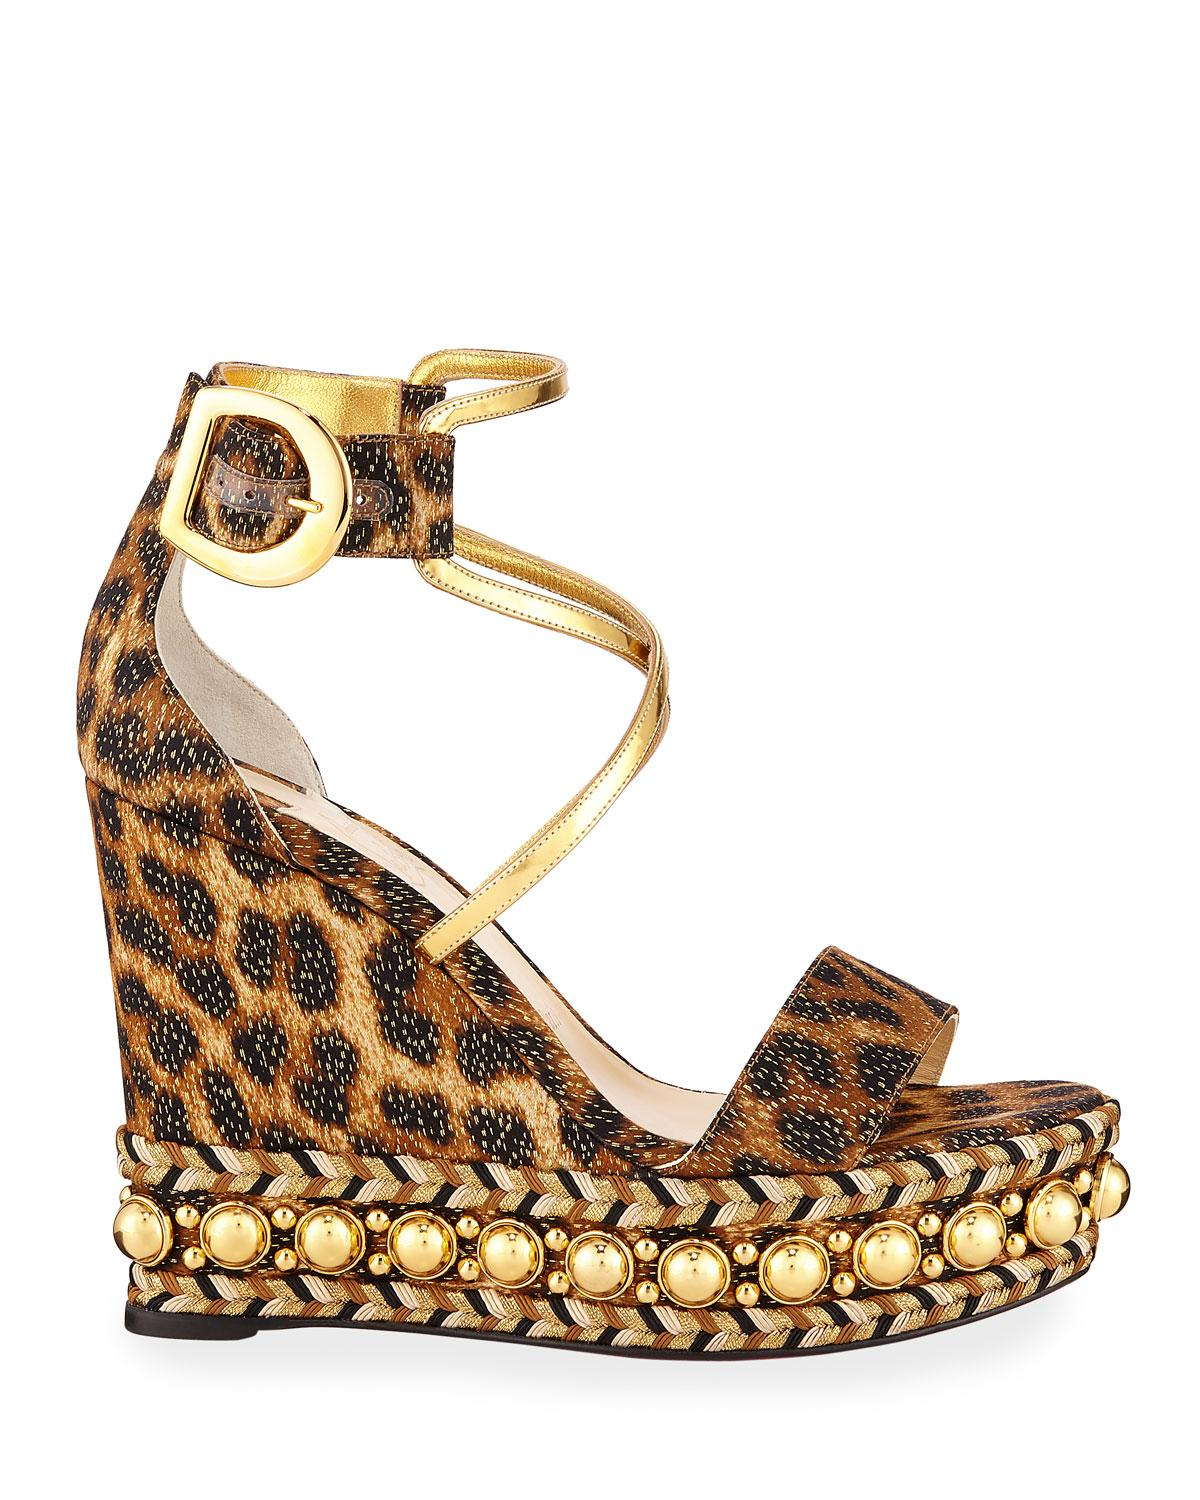 ab4e8216bd06 Lyst - Christian Louboutin Chocazeppa Leopard Wedge Red Sole Espadrille  Sandals in Brown